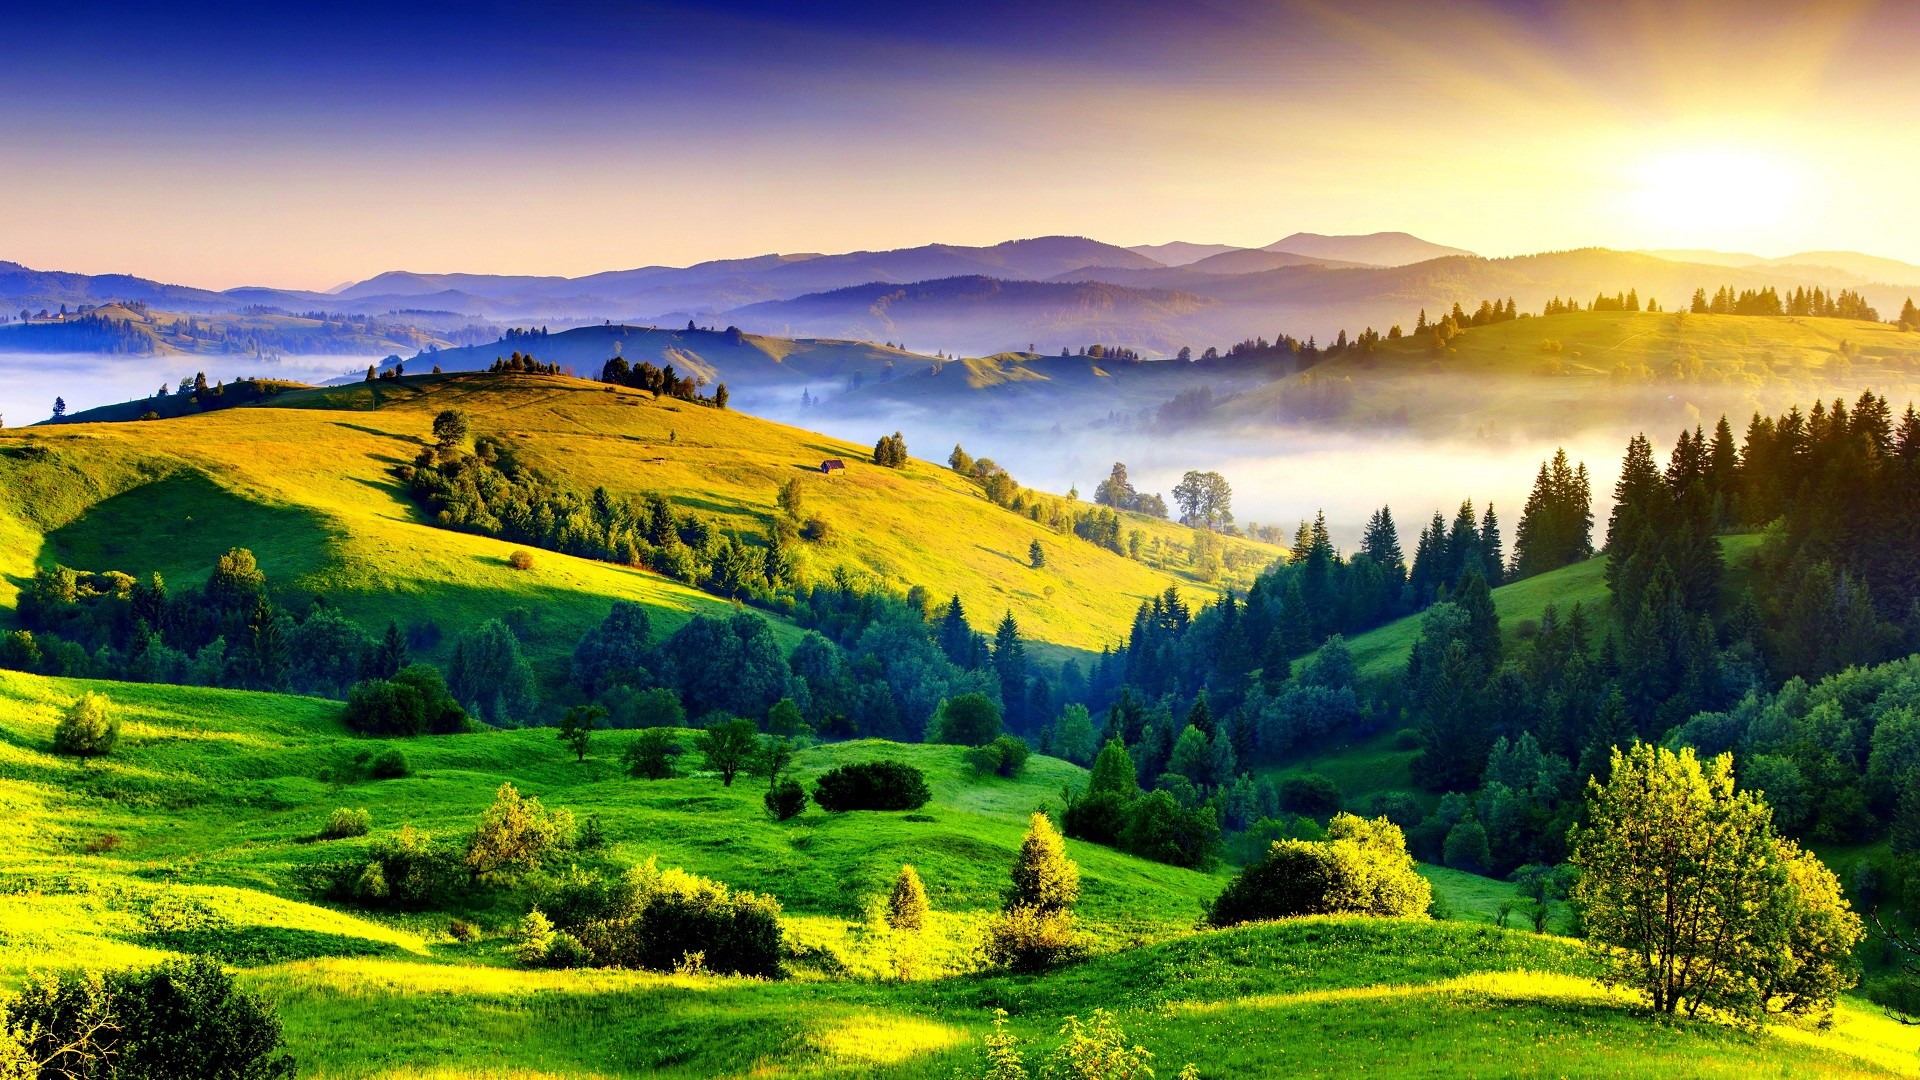 Most Beautiful Scenic Wallpapers (53+ Images